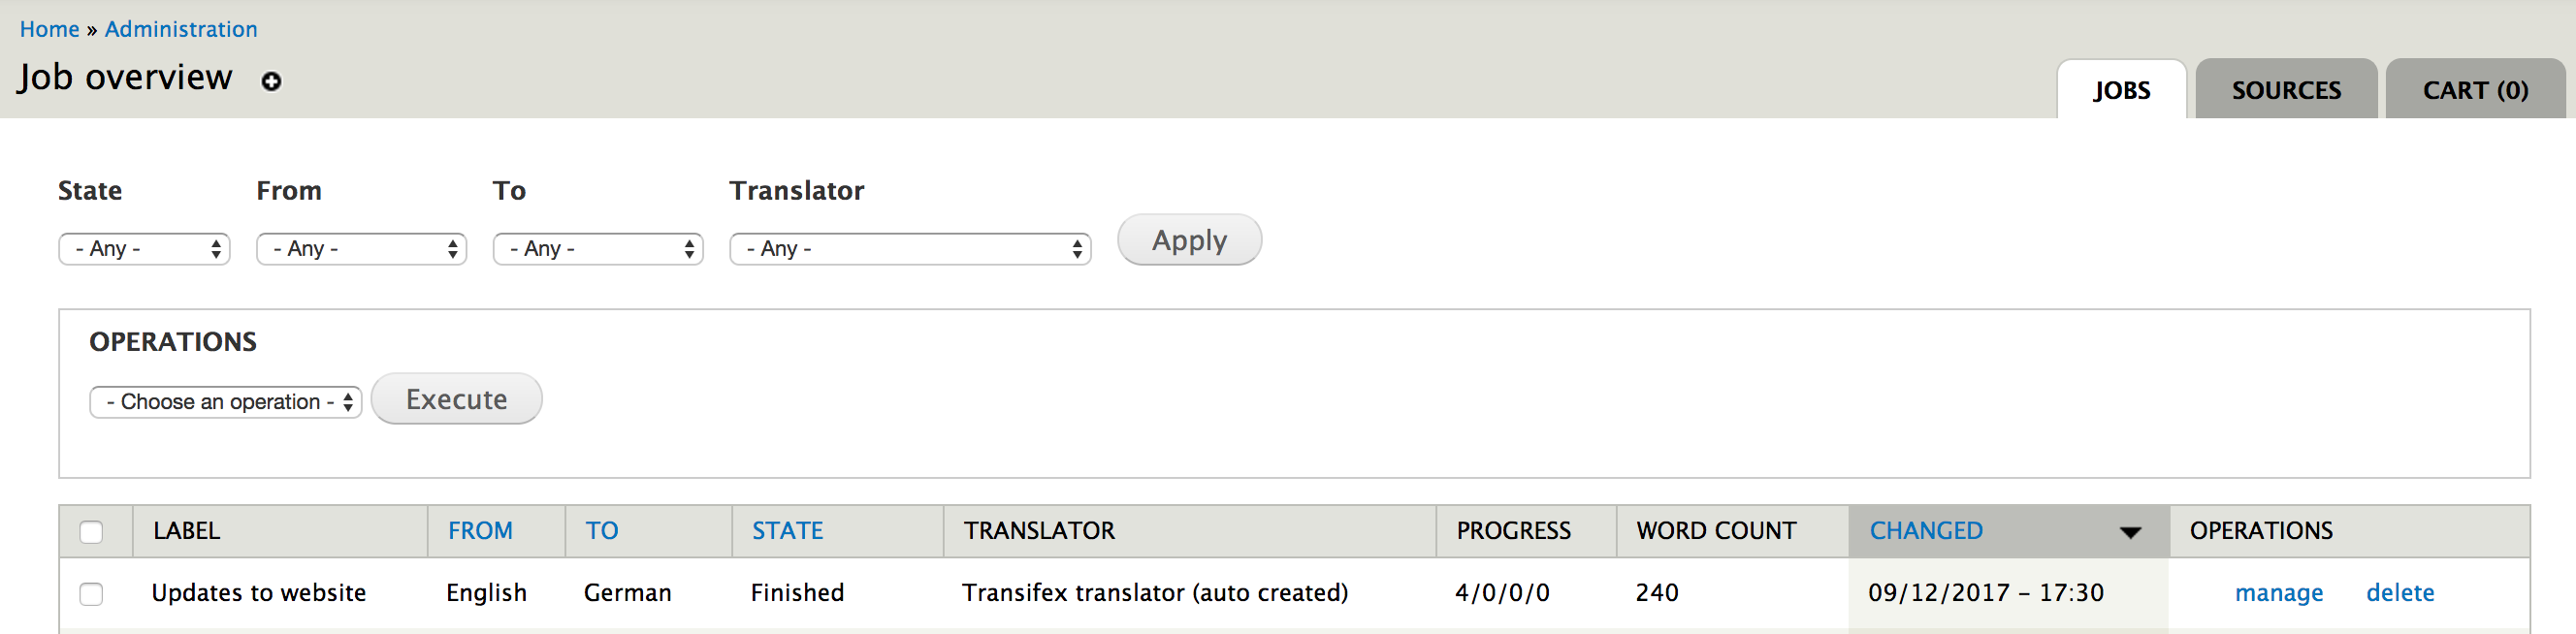 drupal-translation-jobs.png#asset:4154